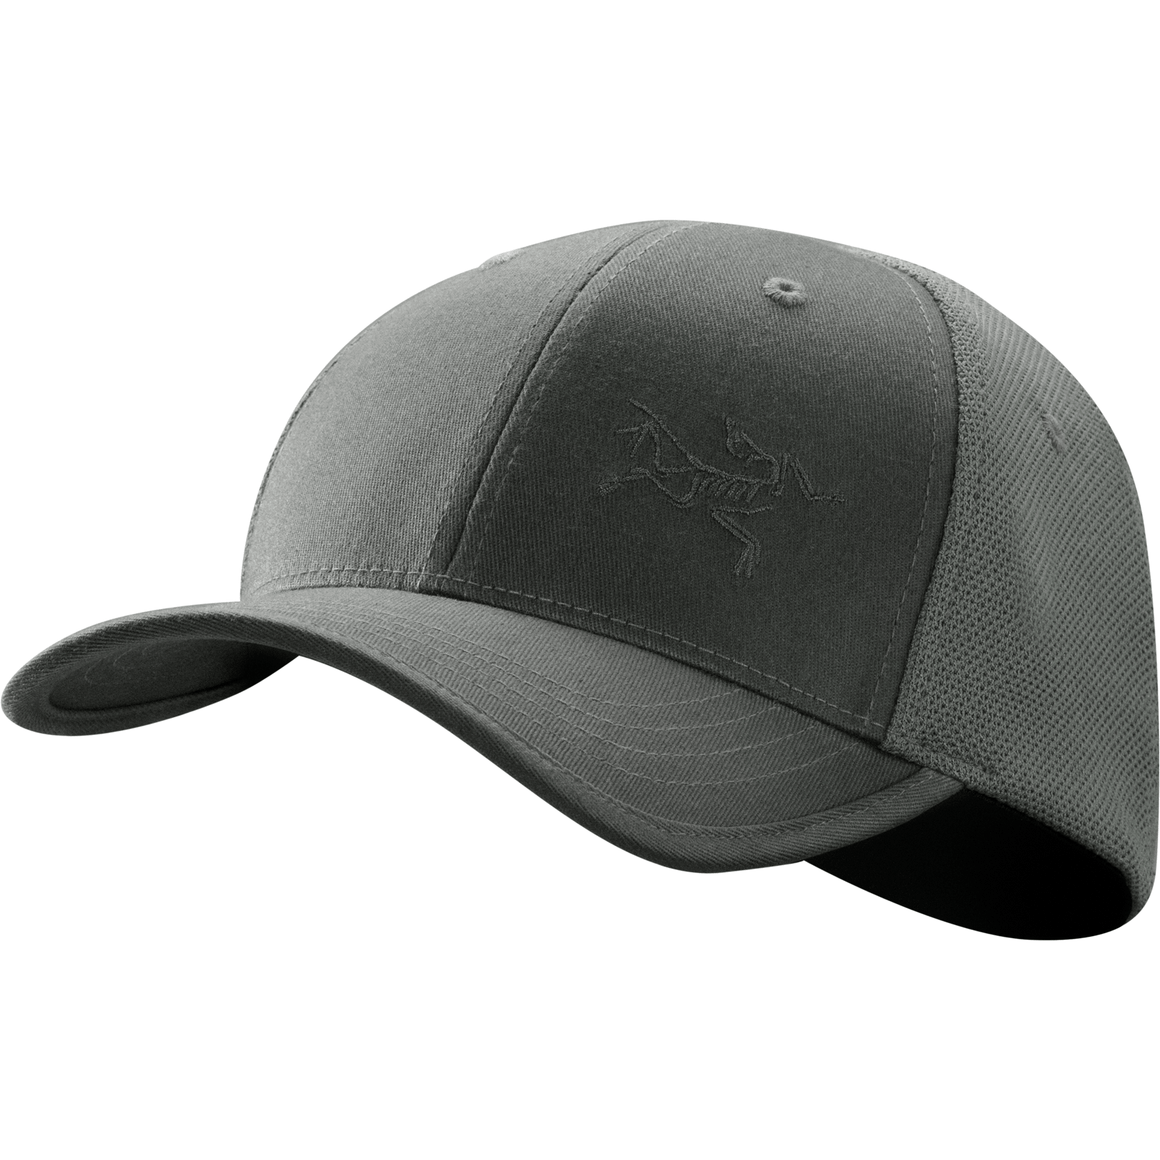 Arc'teryx LEAF B.A.C. Cap (Non-Velcro) (Discontinued Model)